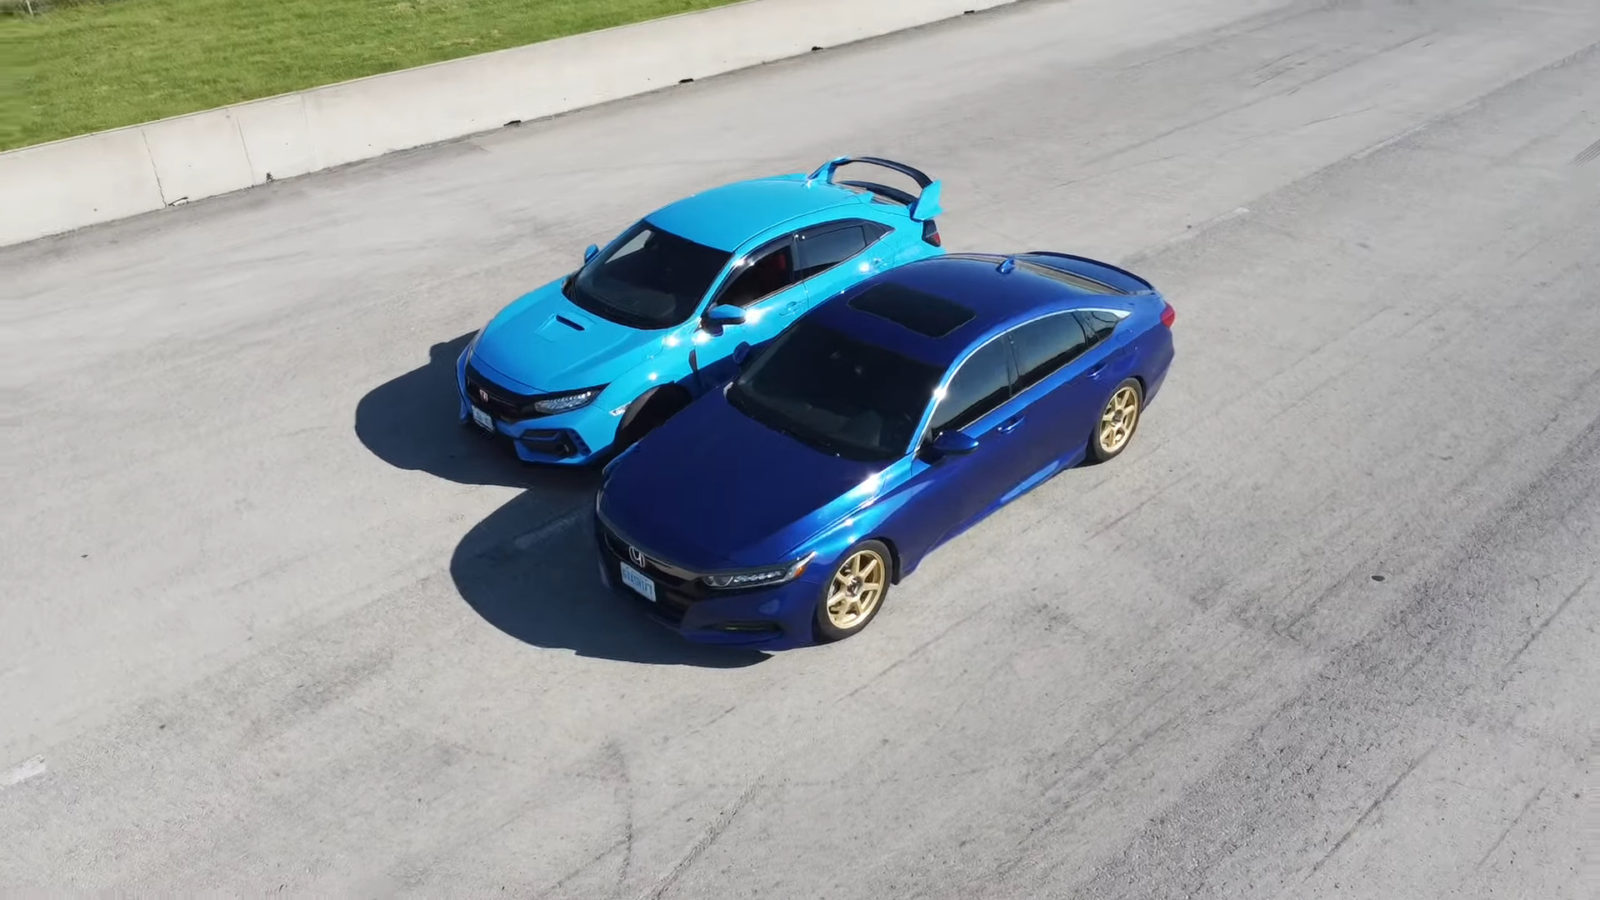 civic-type-r-drag-races-tuned-accord-2.0t-with-6-speed-manual,-proves-a-point